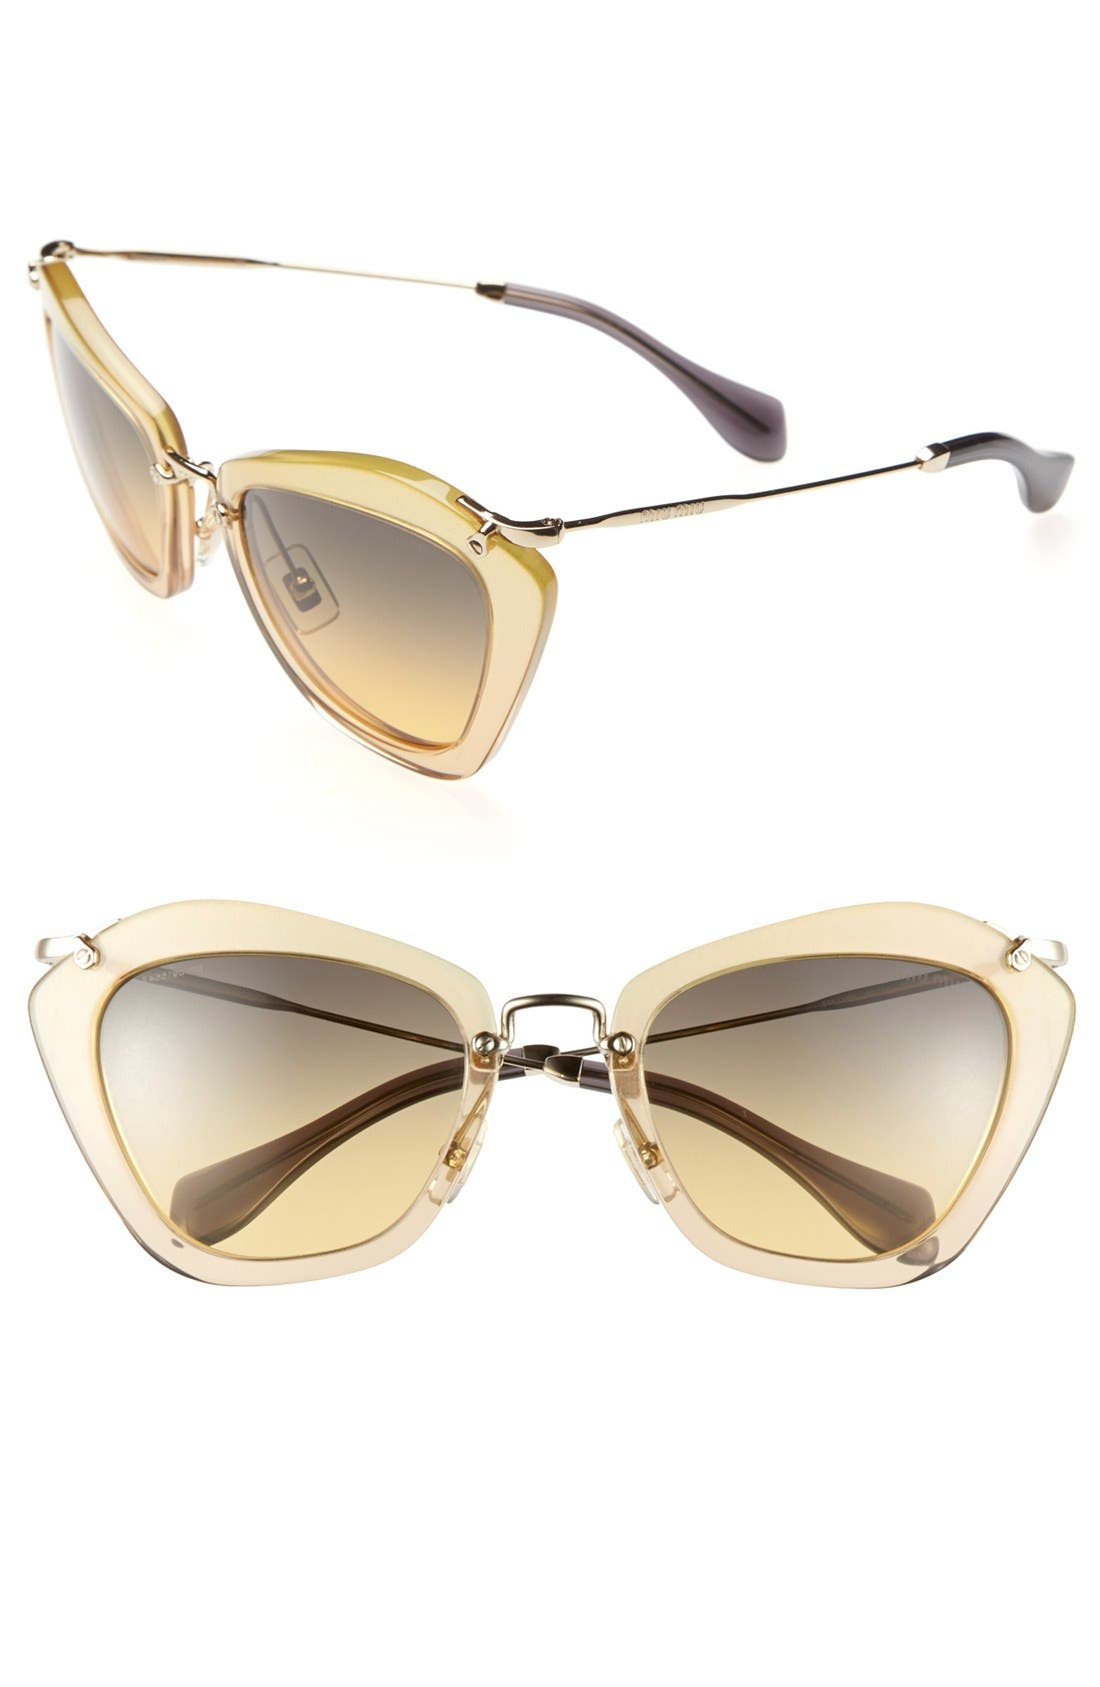 Alternate Image 1 Selected - Miu Miu Noir 55mm Cat Eye Sunglasses